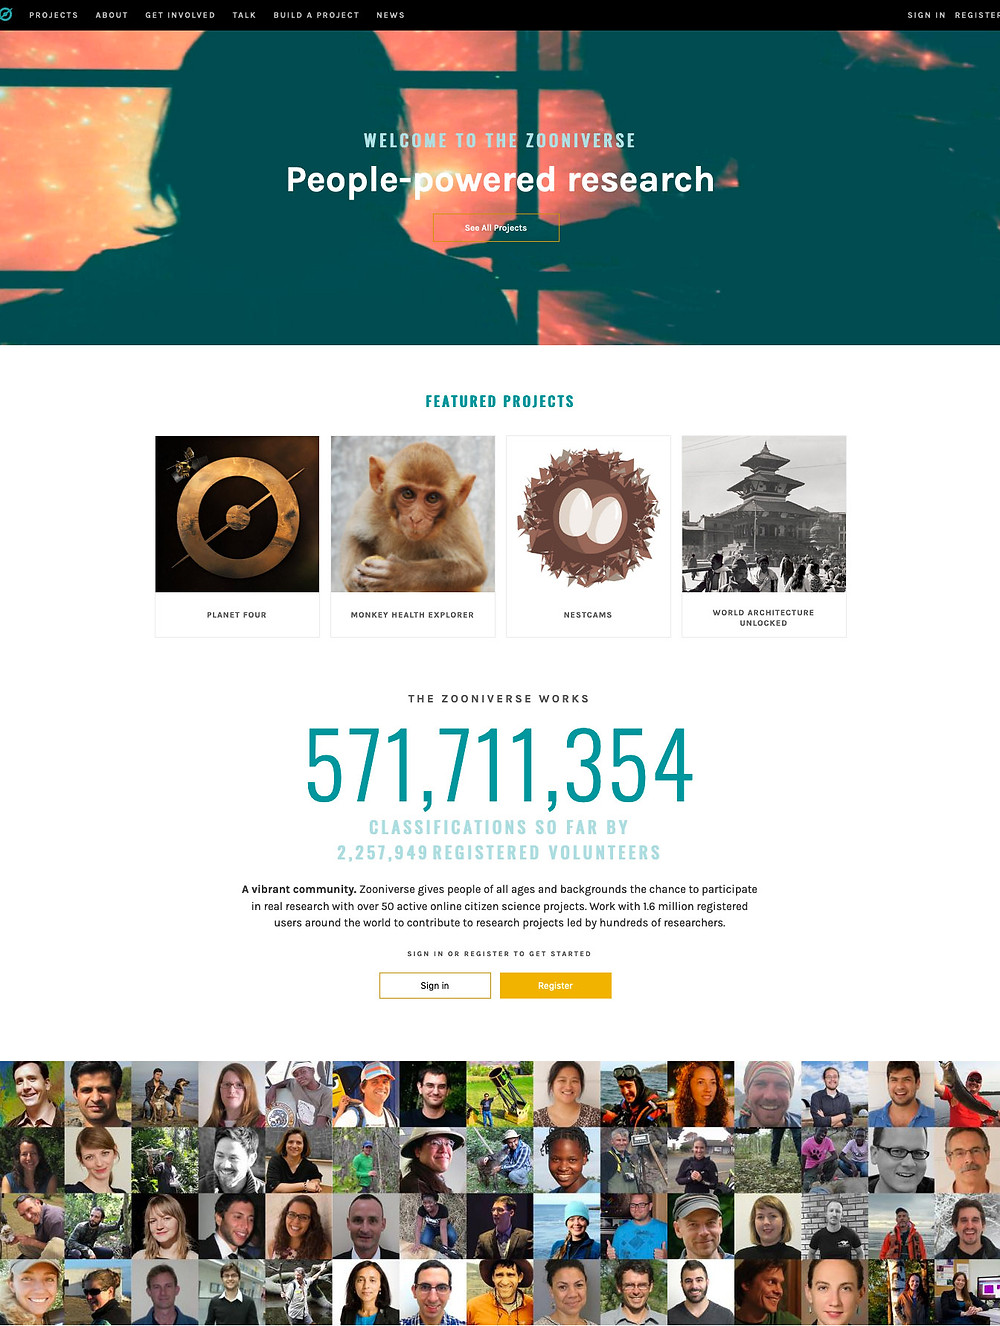 Zooniverse homepage image